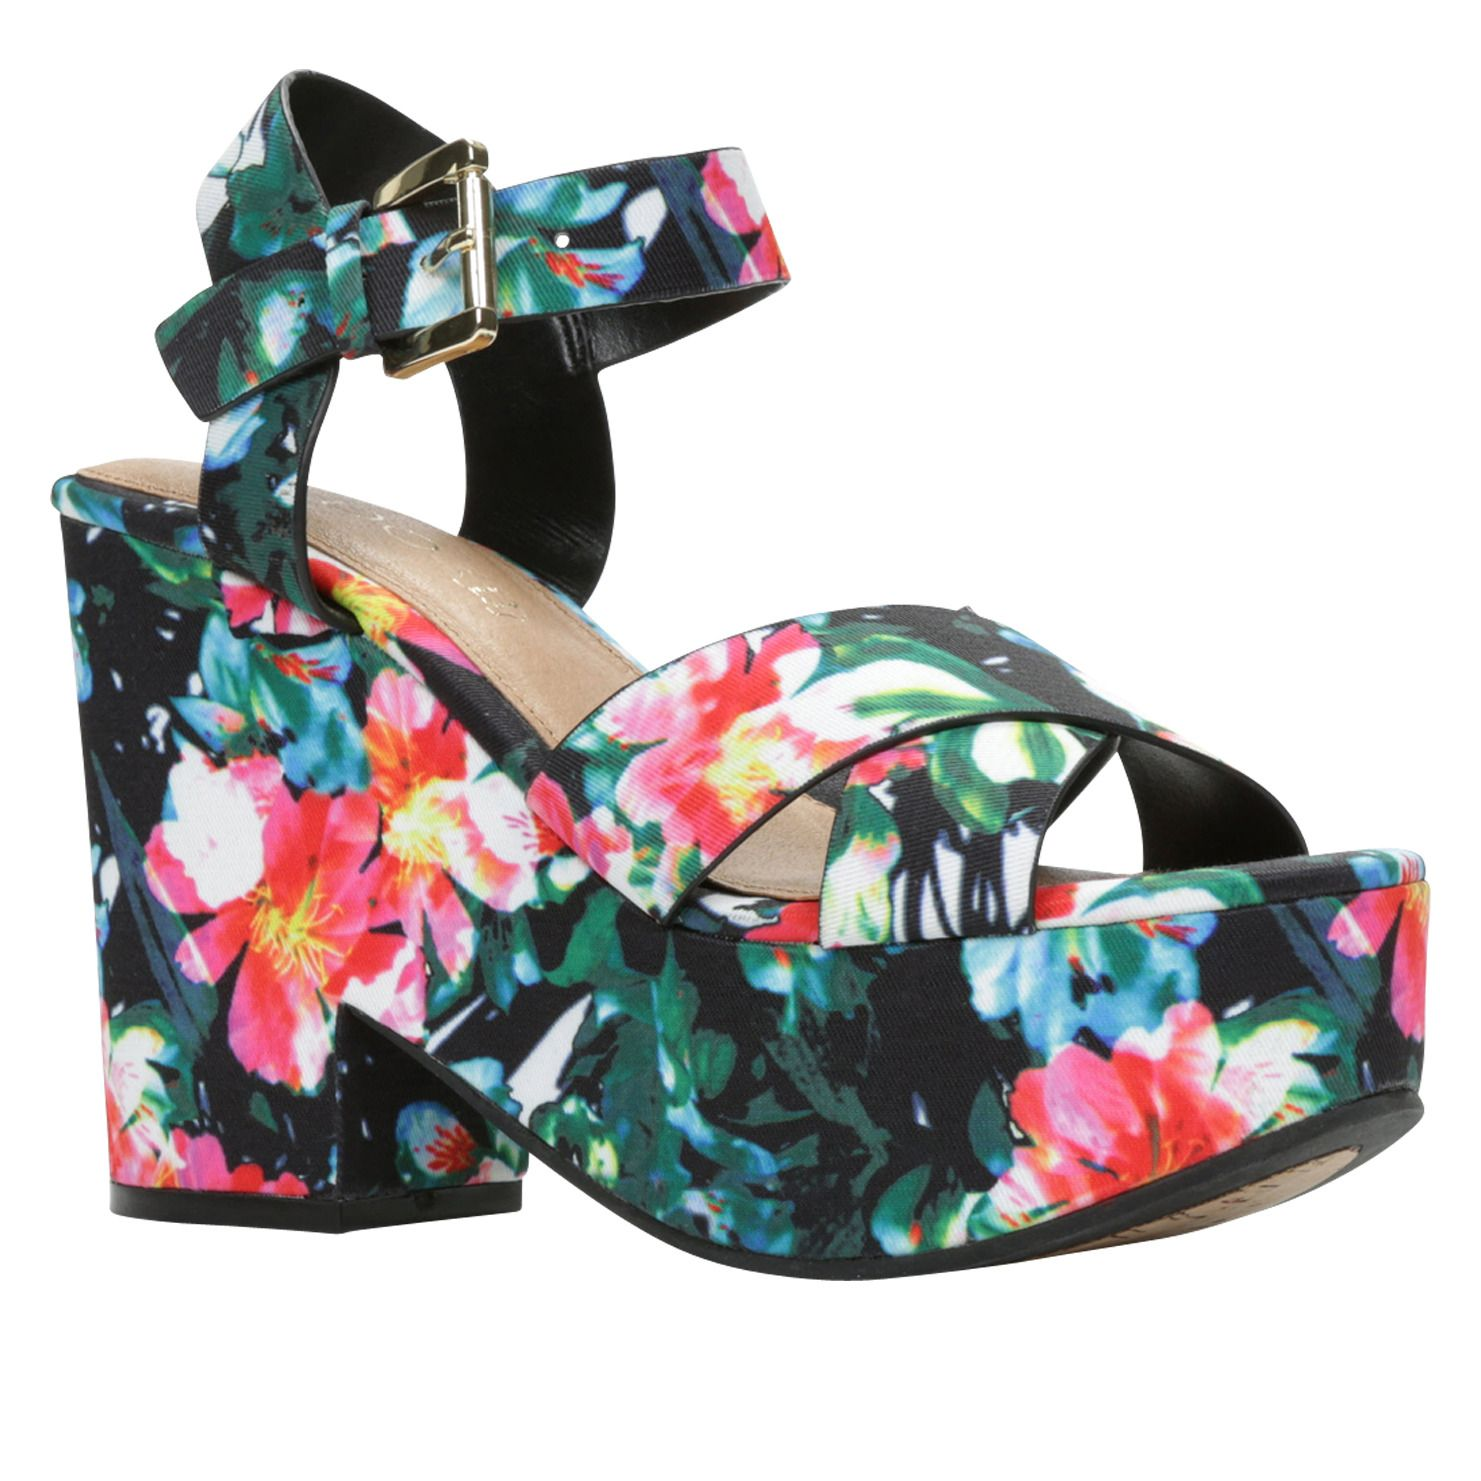 61d6f87f2601 These floral wedges are comfortable and facilitate your hunt for the next  best act.